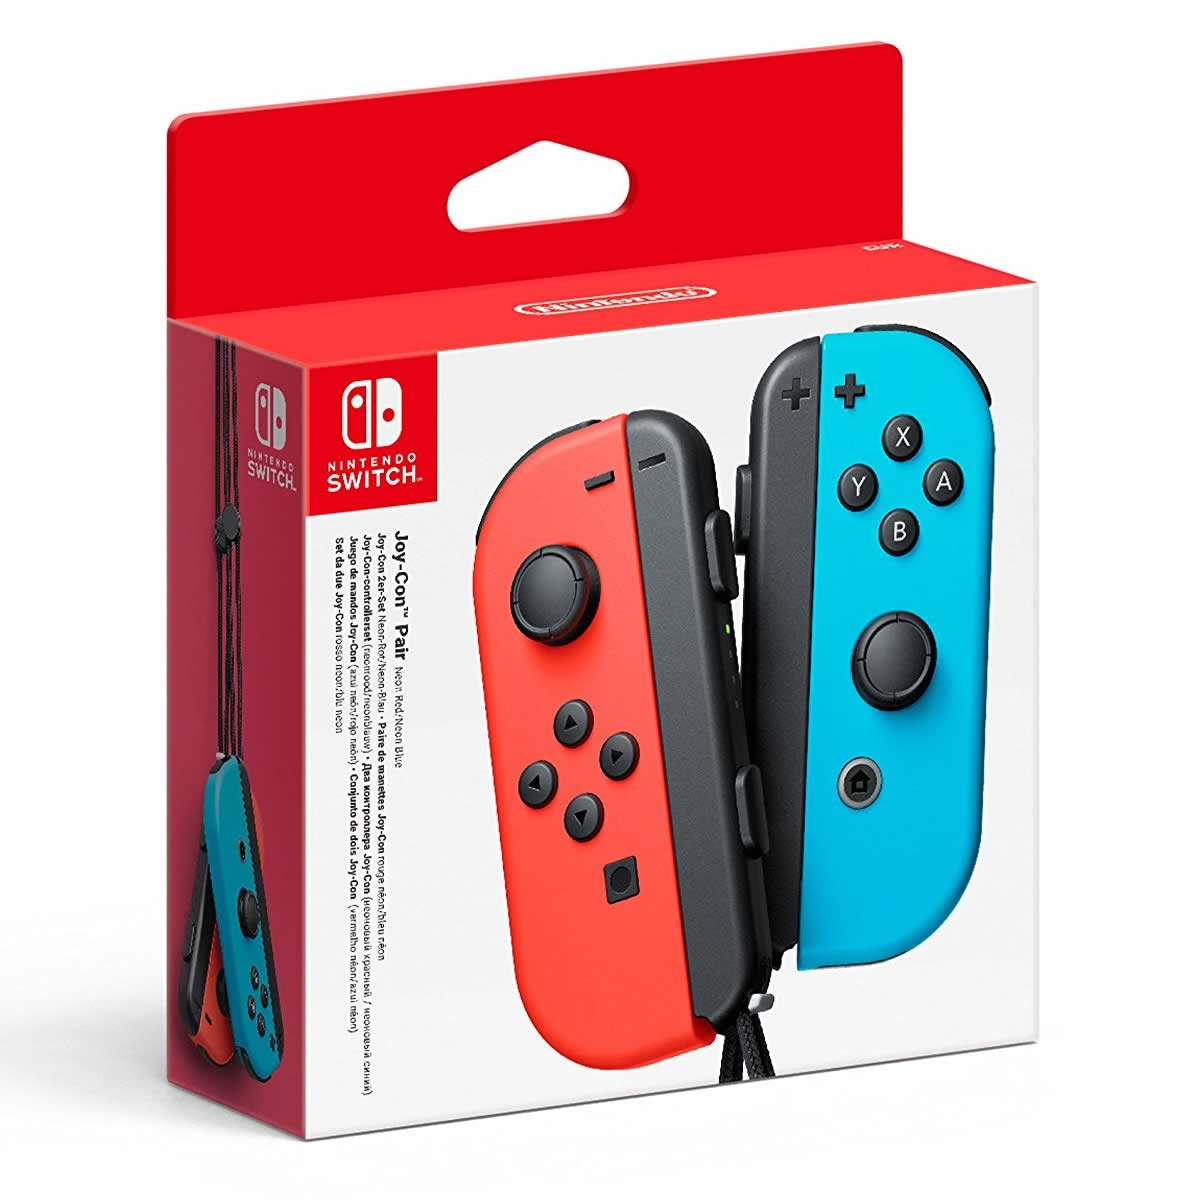 NINTENDO SWITCH JOY-CON PAIR NEON RED/NEON BLUE (NSW)